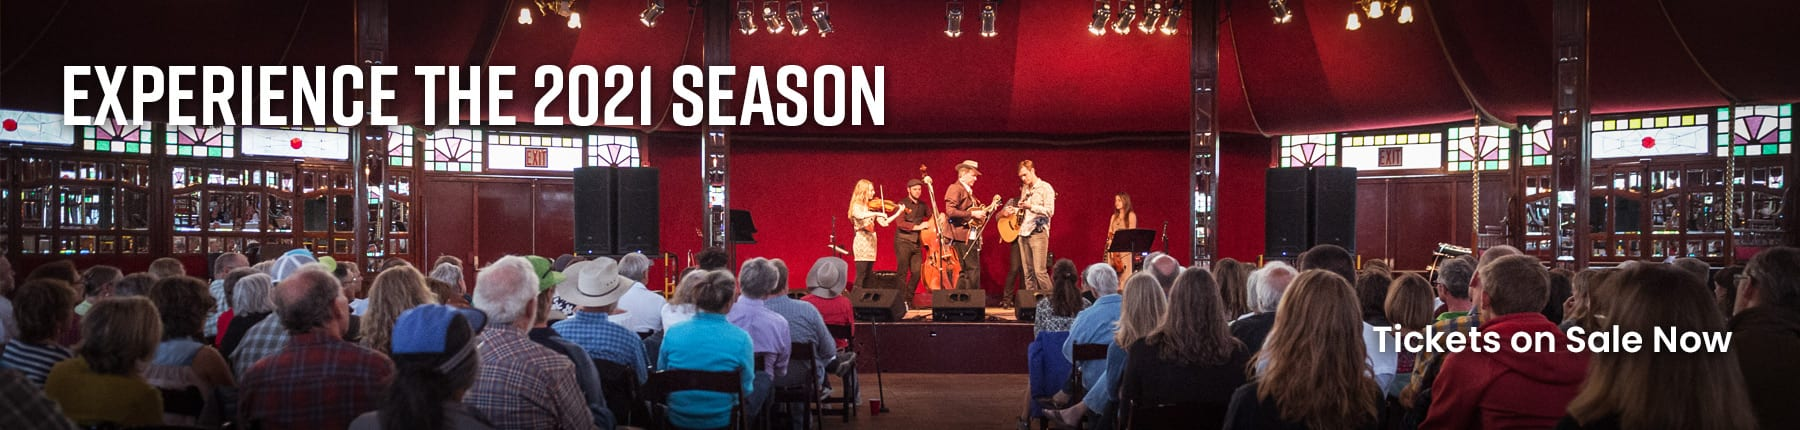 crested butte music festival 2021 ticket sales